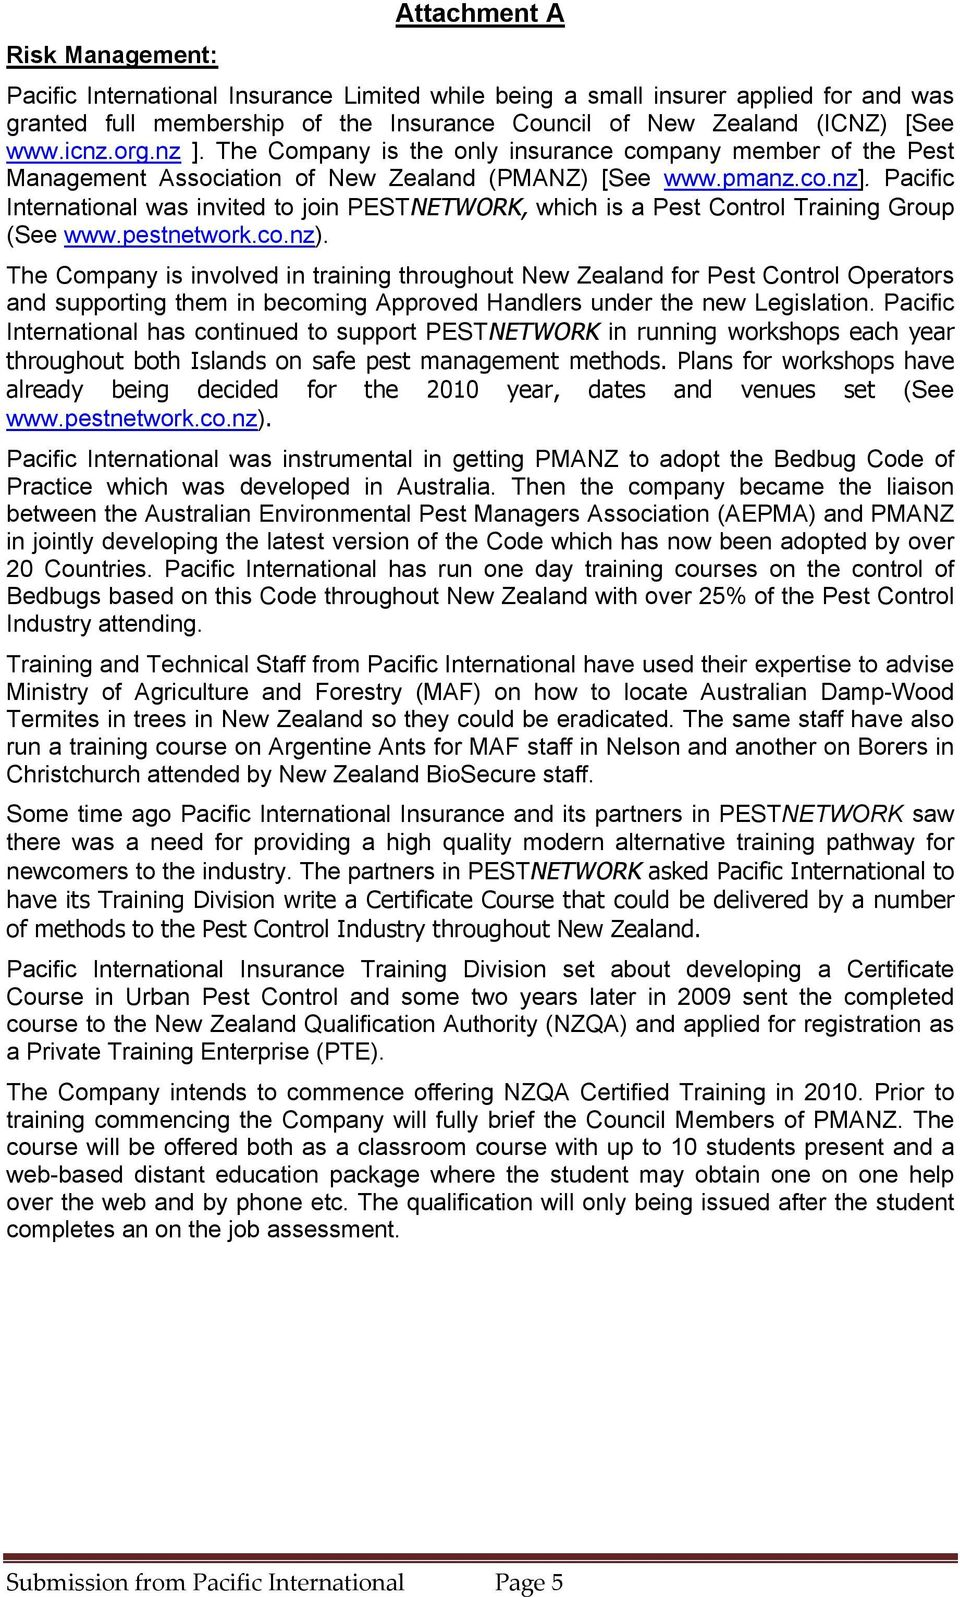 Pacific International was invited to join PESTNETWORK, which is a Pest Control Training Group (See www.pestnetwork.co.nz).